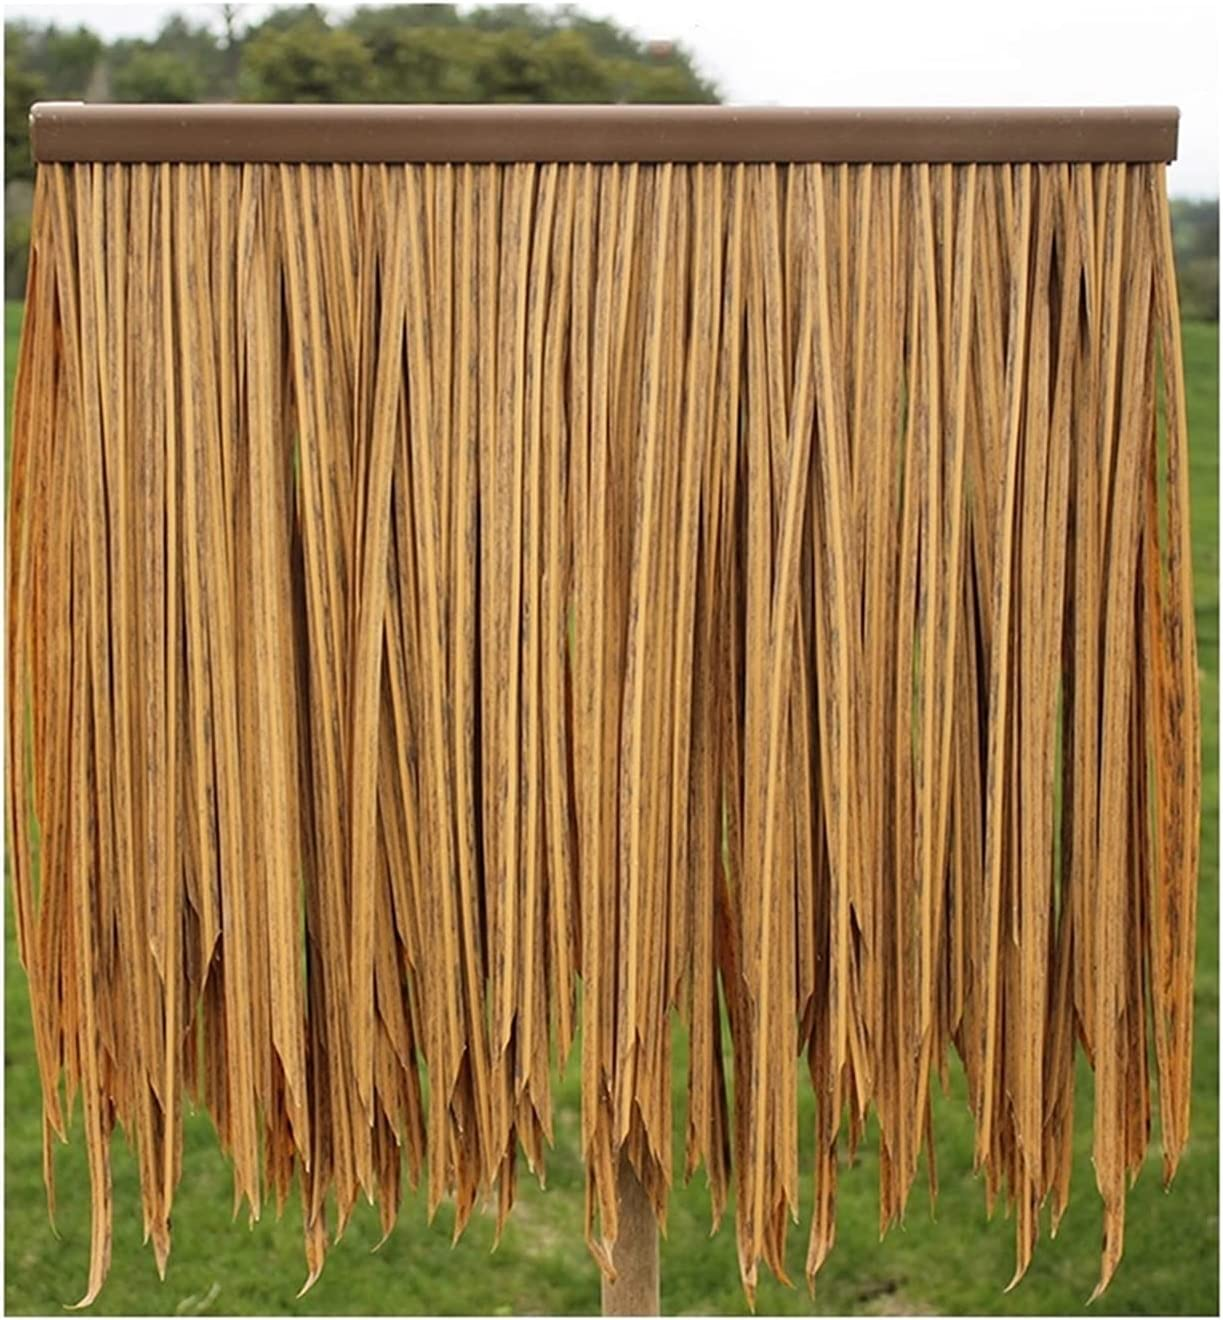 sold out Ranking TOP3 Palm Thatch Fake Straw Environmental PE Protection High-Density